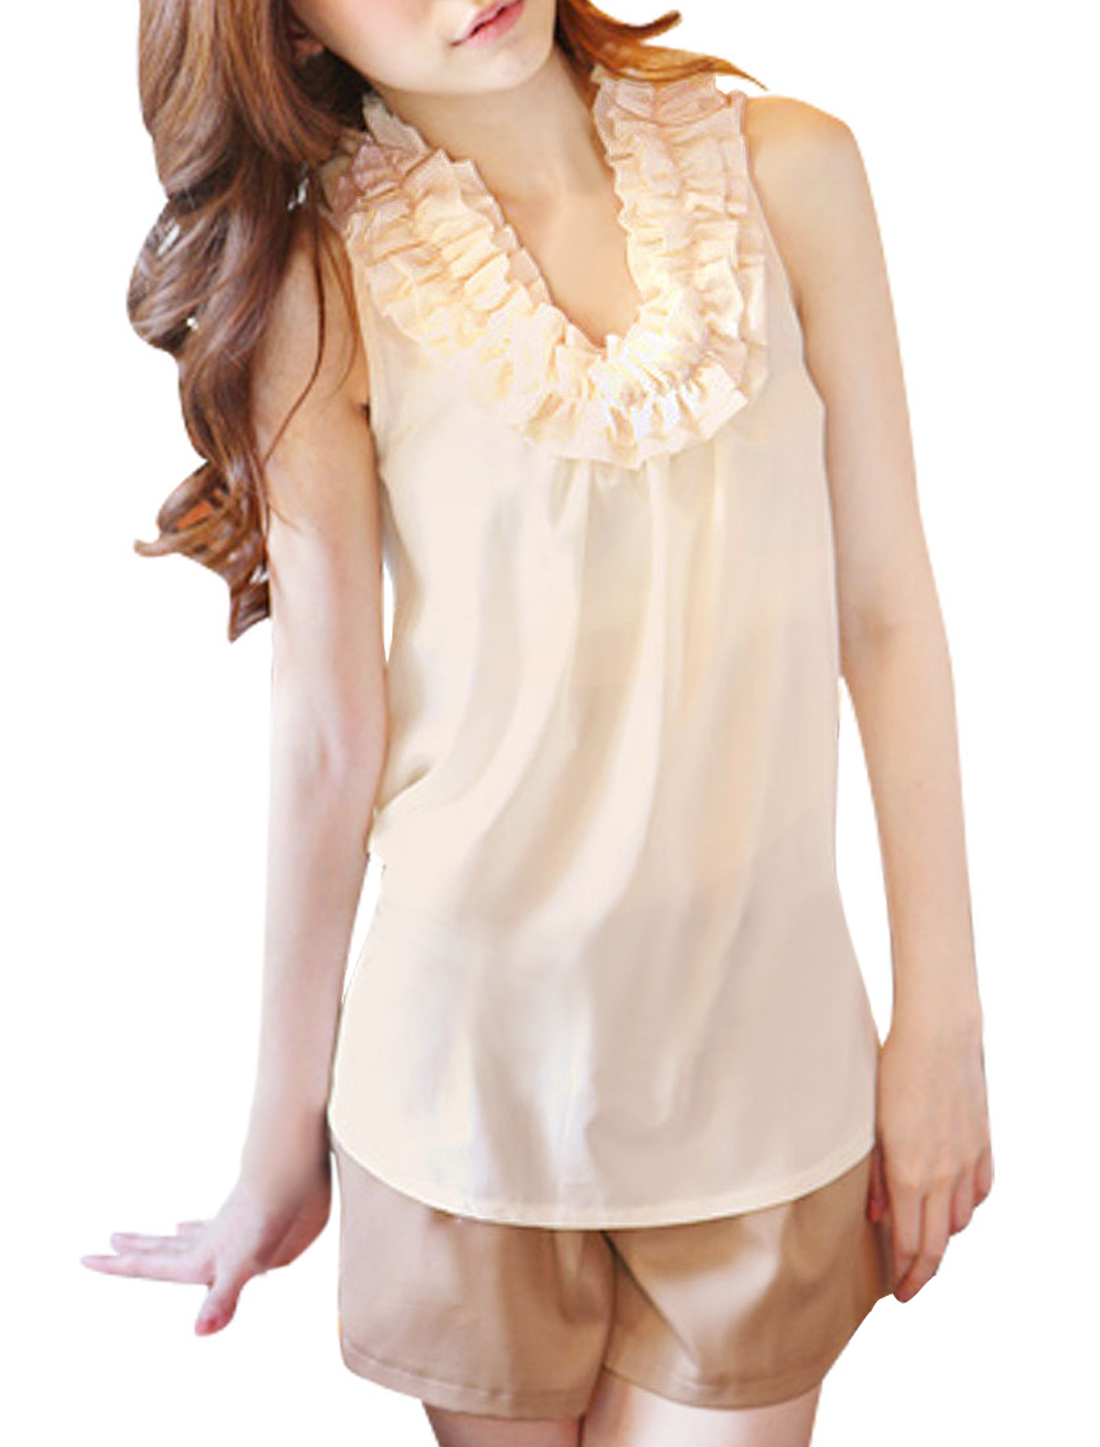 Women Scoop Neck Sleeveless Ruffled Chiffon Top Beige S